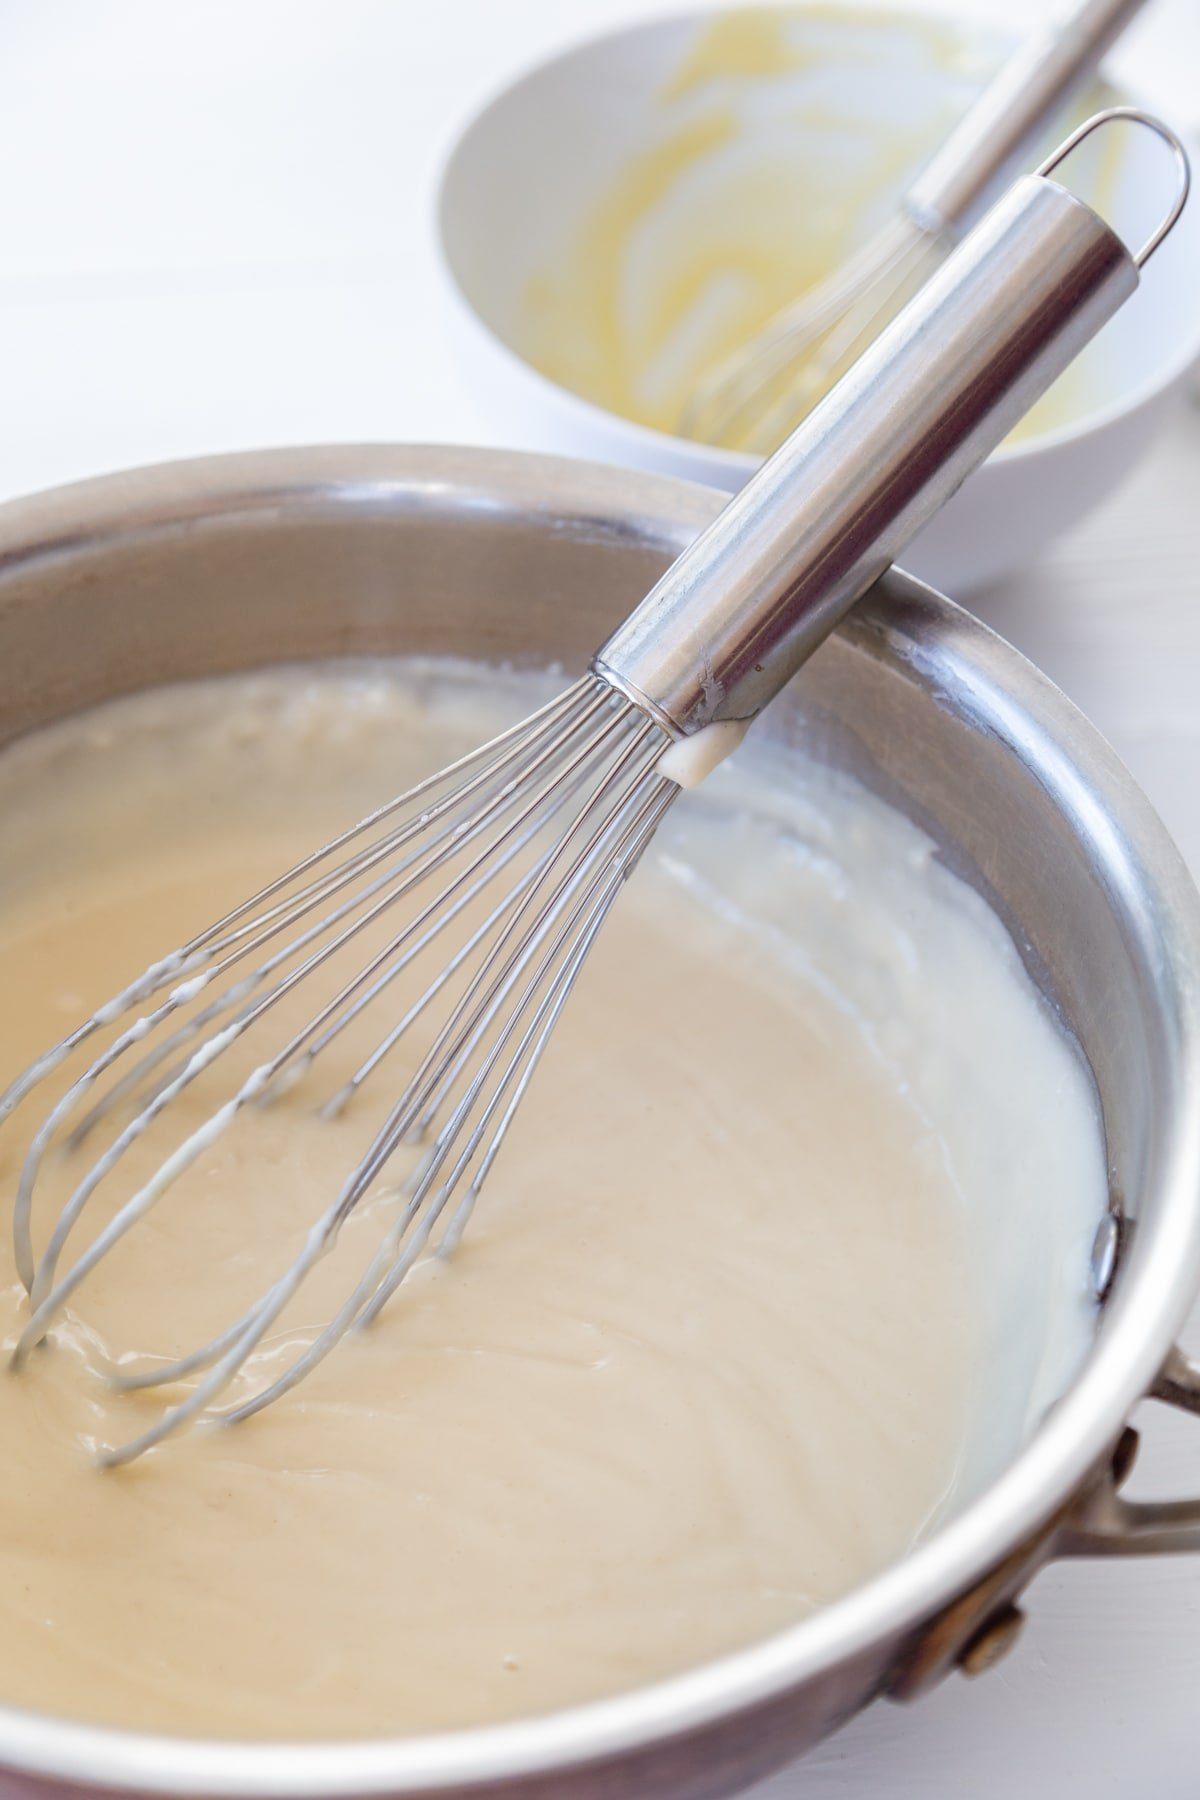 Vanilla pudding being whisked in a copper pot.